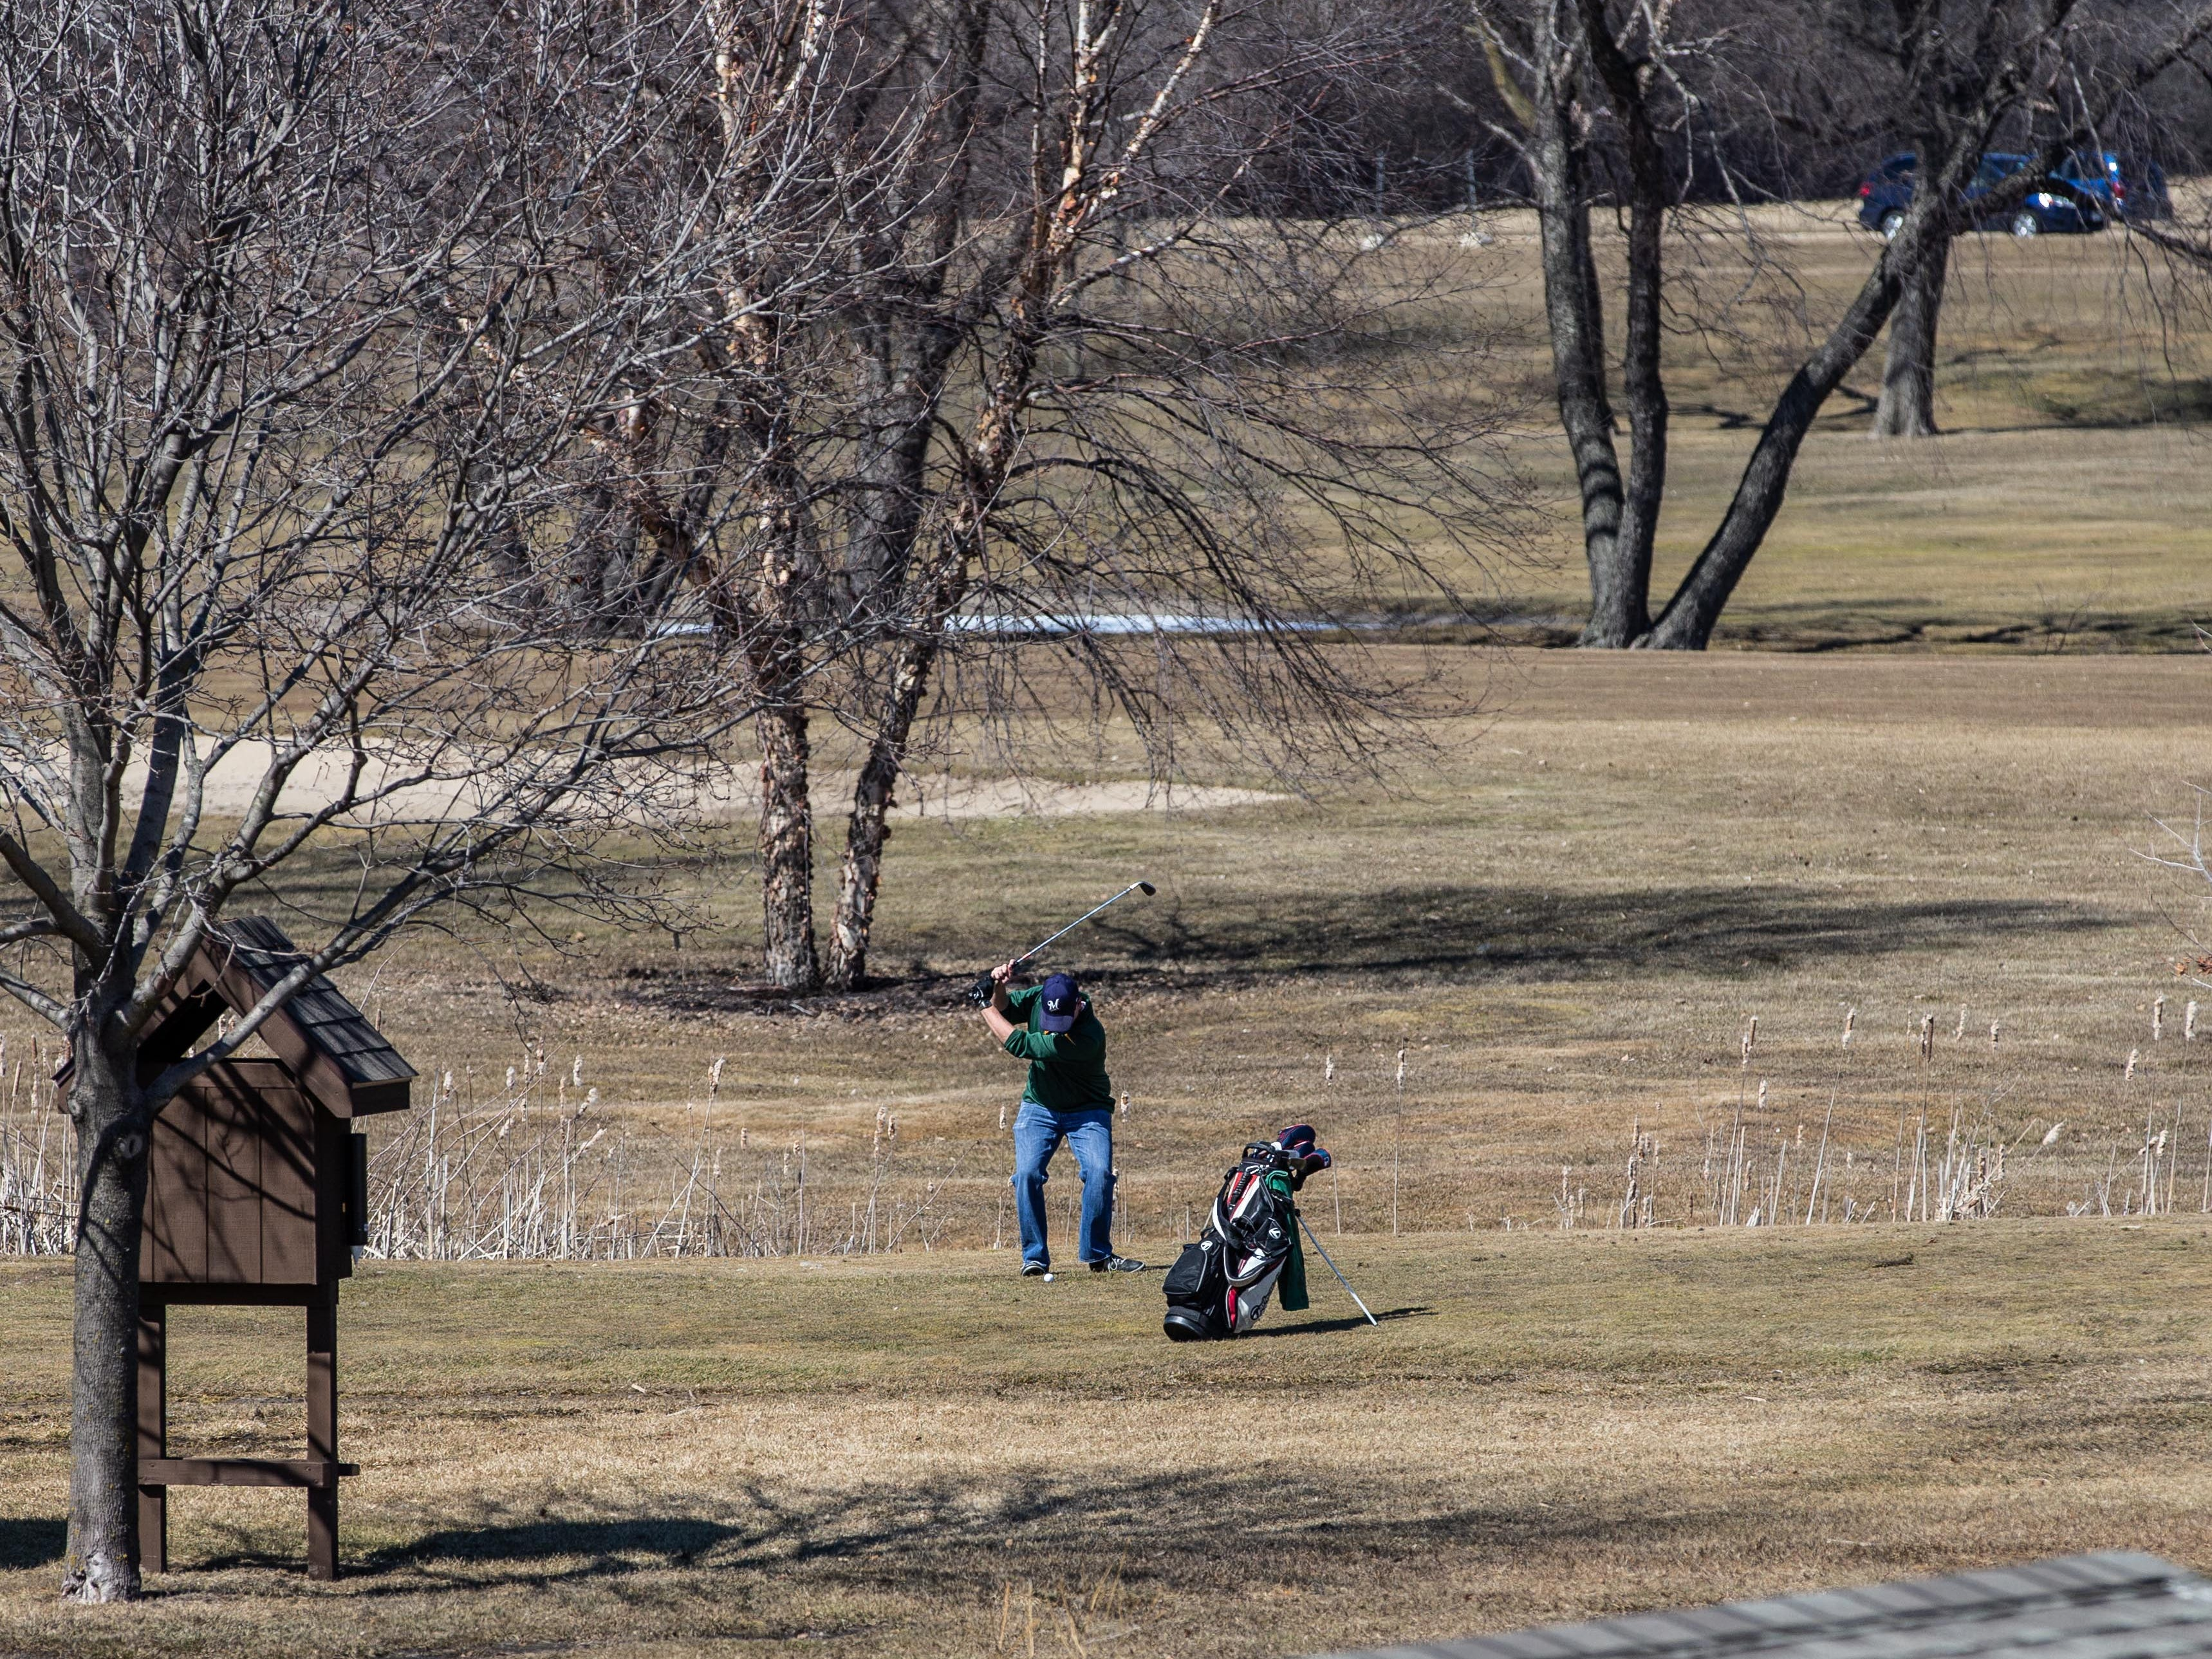 A golfer plays through at Moor Downs Golf Course in Waukesha on Saturday, March 23, 2019. Warm sunny weather lured many enthusiasts outside to enjoy the game.